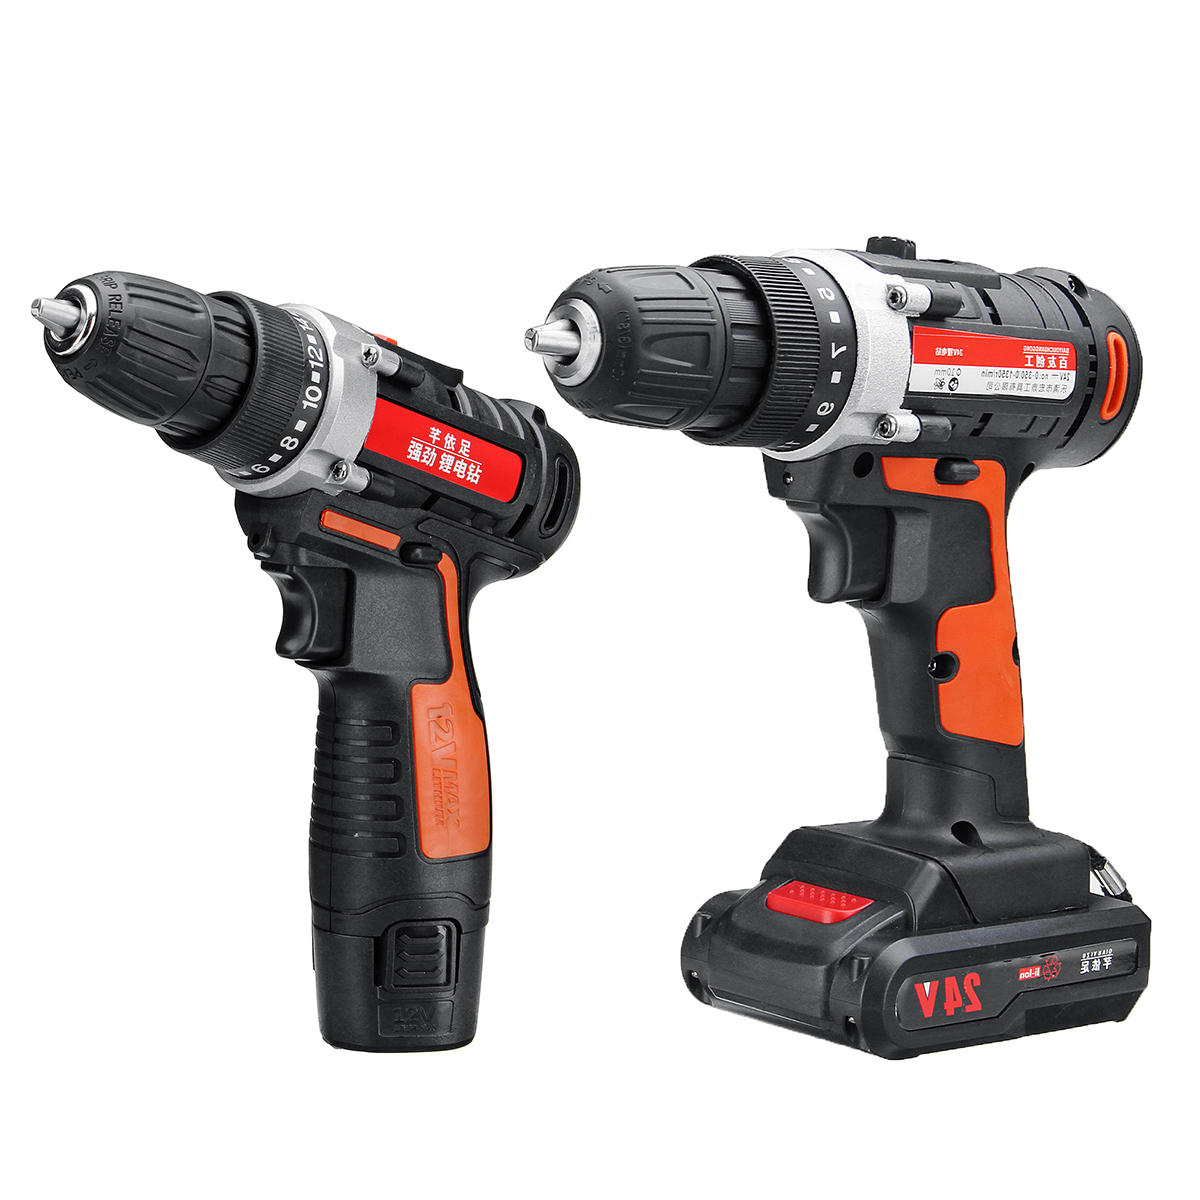 12V/24V Lithium Battery Power Drills Cordless Rechargeable 2 Speed Electric Drill – 24V